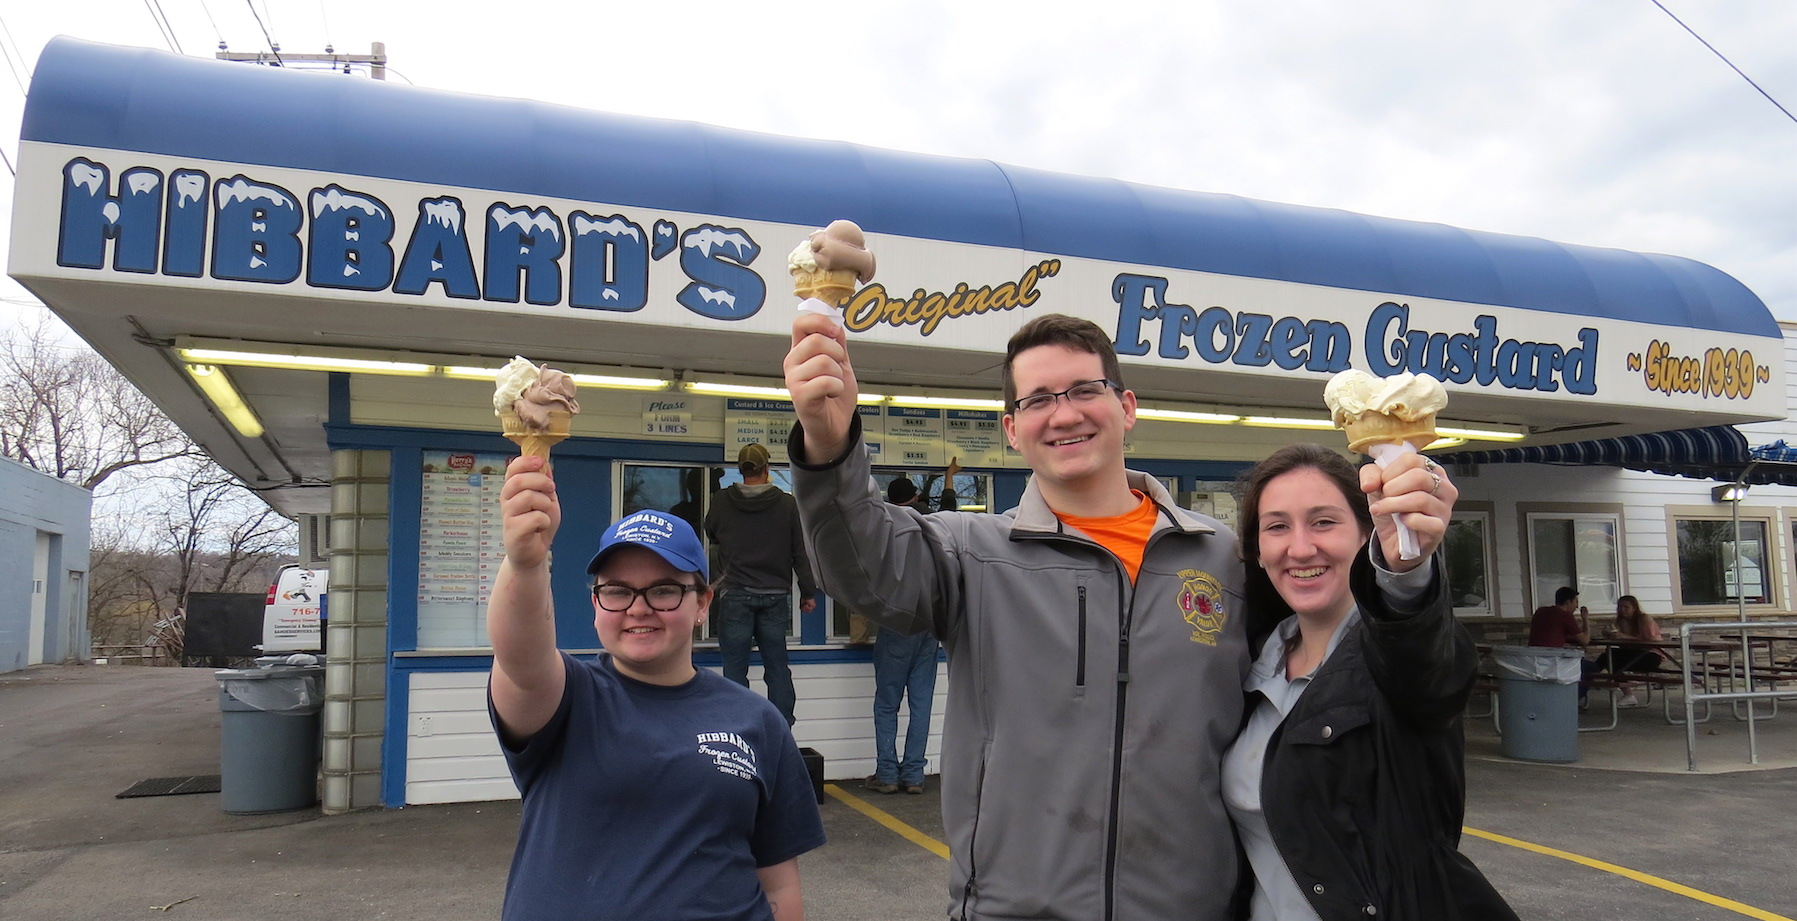 Max Jacobson of Lewiston and Emily Virgil of Rochester celebrate their first Hibbard's Original Frozen Custard stop of the season on Monday. Employee Gabby Ott joins them outside the stand.